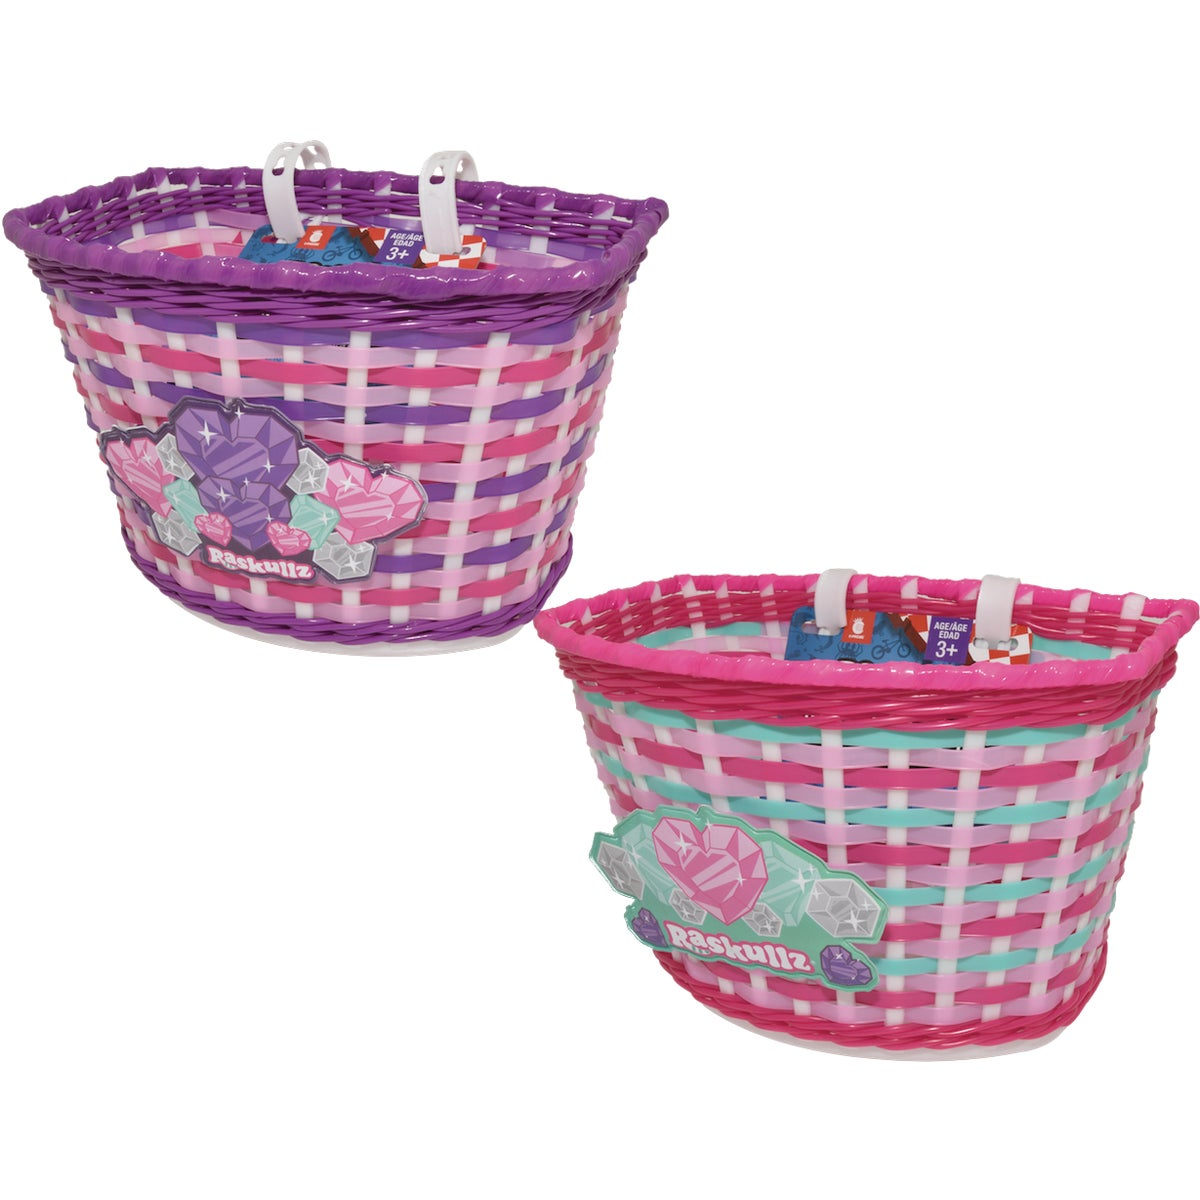 GLITTRGIRL HANDLE BASKET - 8003375 by Bell Sports